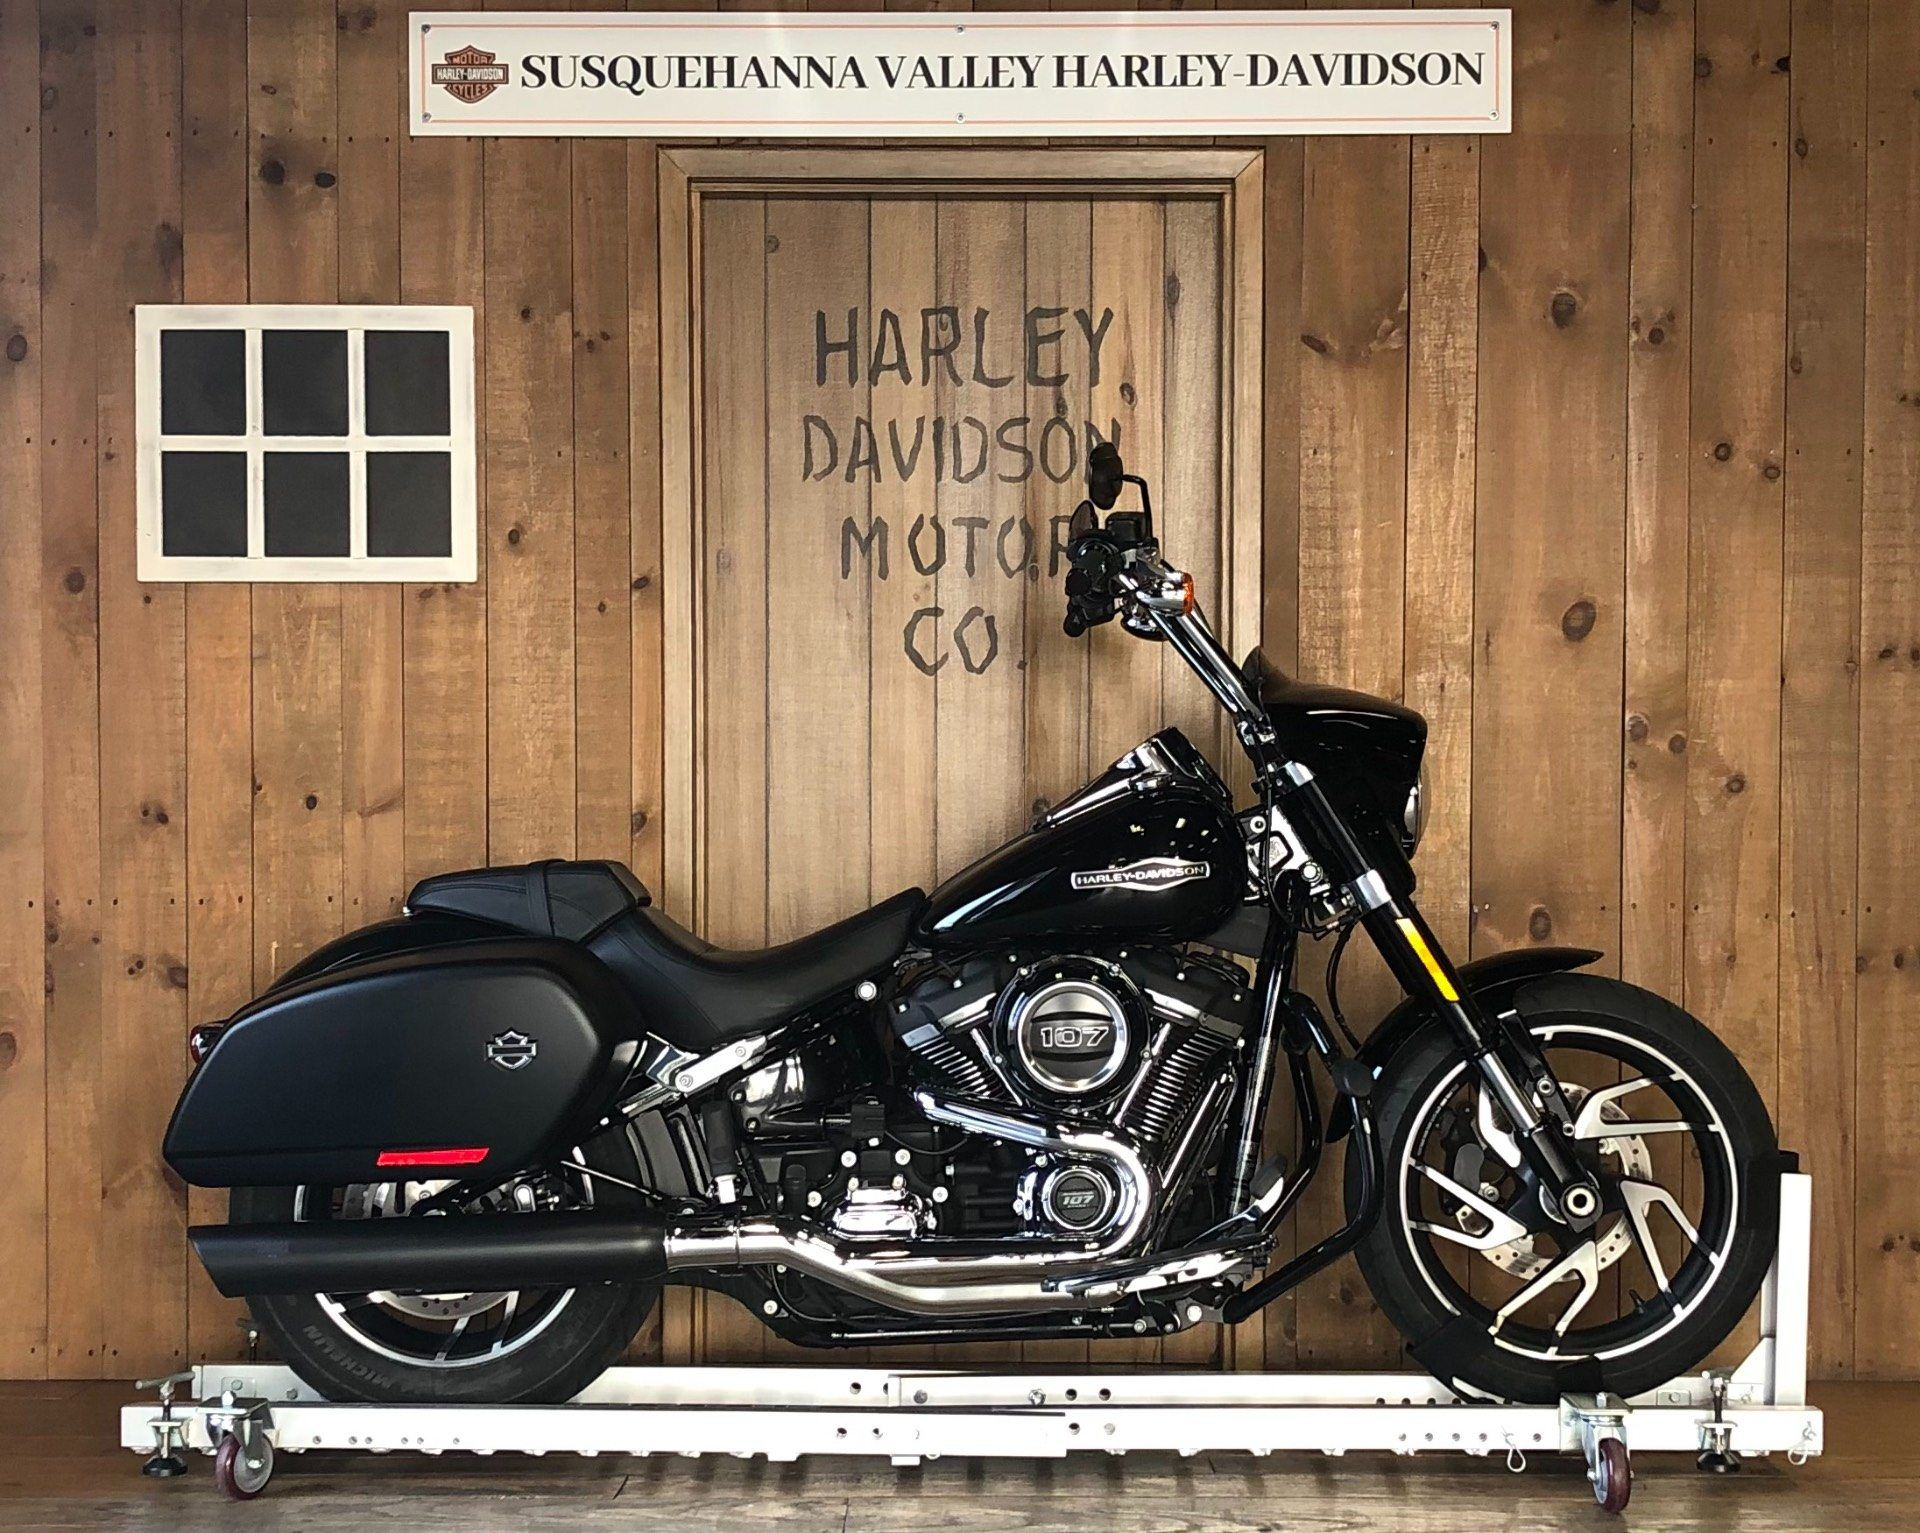 2018 Harley-Davidson Sport Glide in Harrisburg, Pennsylvania - Photo 1